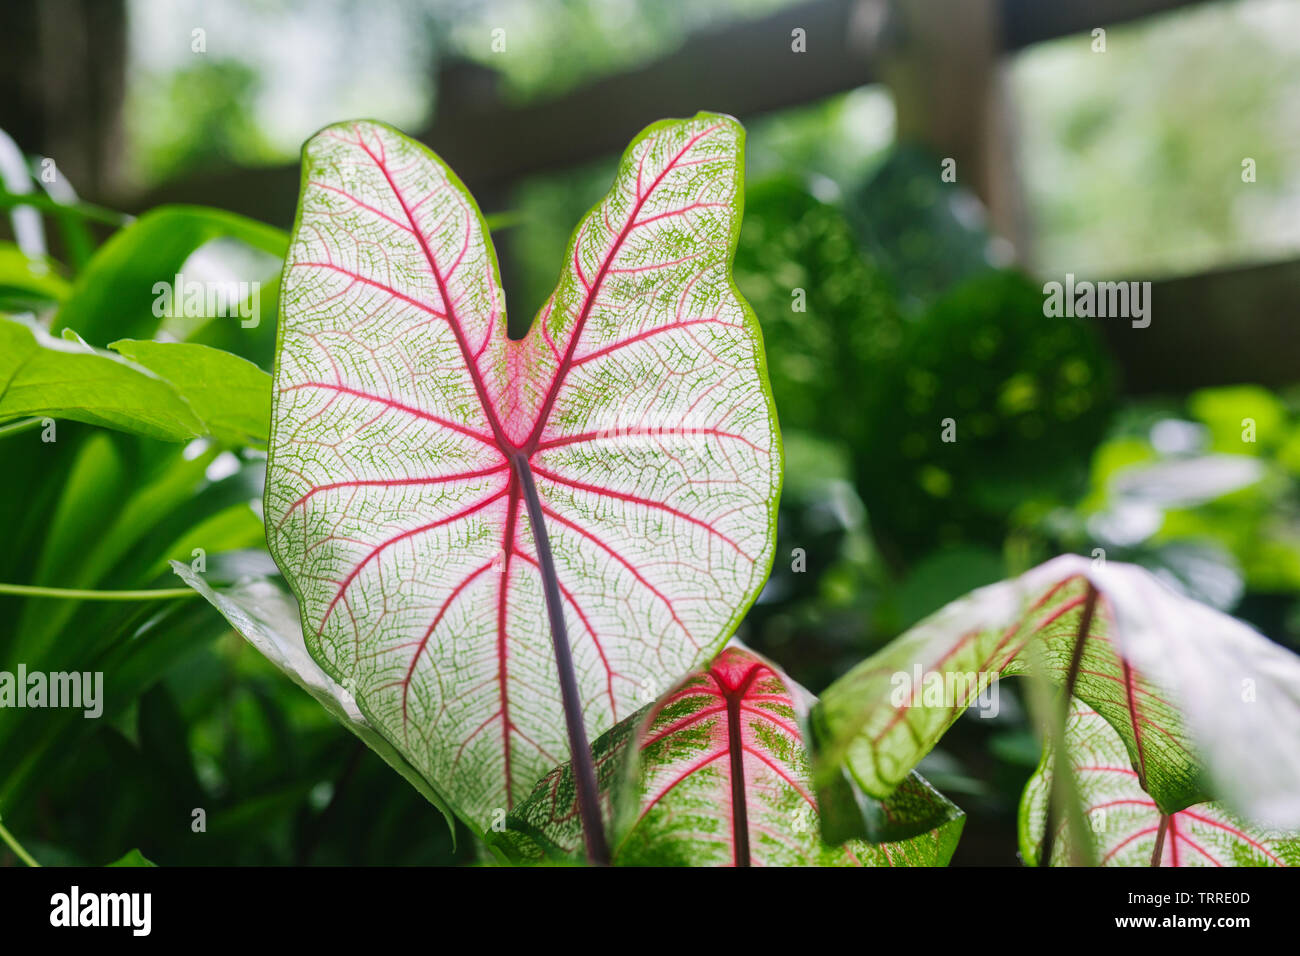 Close up of backlit taro (kalo) leaves growing on the Hamakua coast on the island of Hawaii - Stock Image